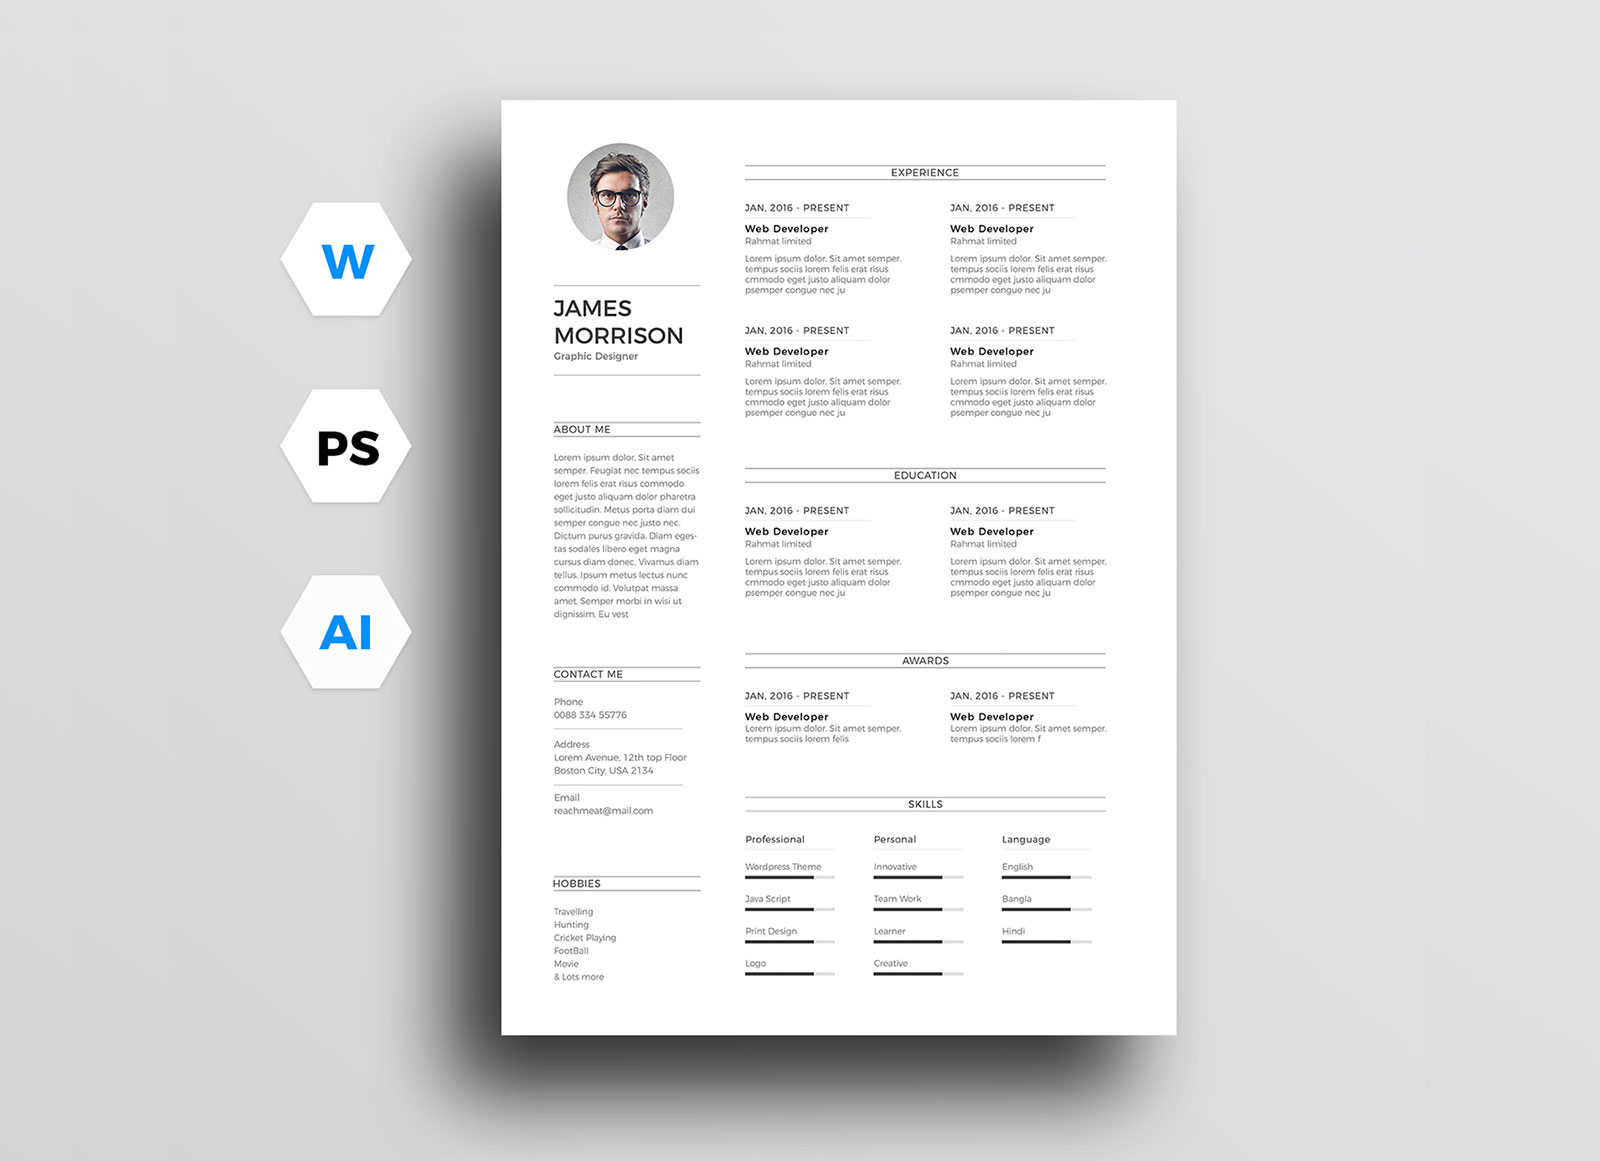 Free-Minimal-CV-Resume-Template-in-Word-Ai-&-PSD (1)